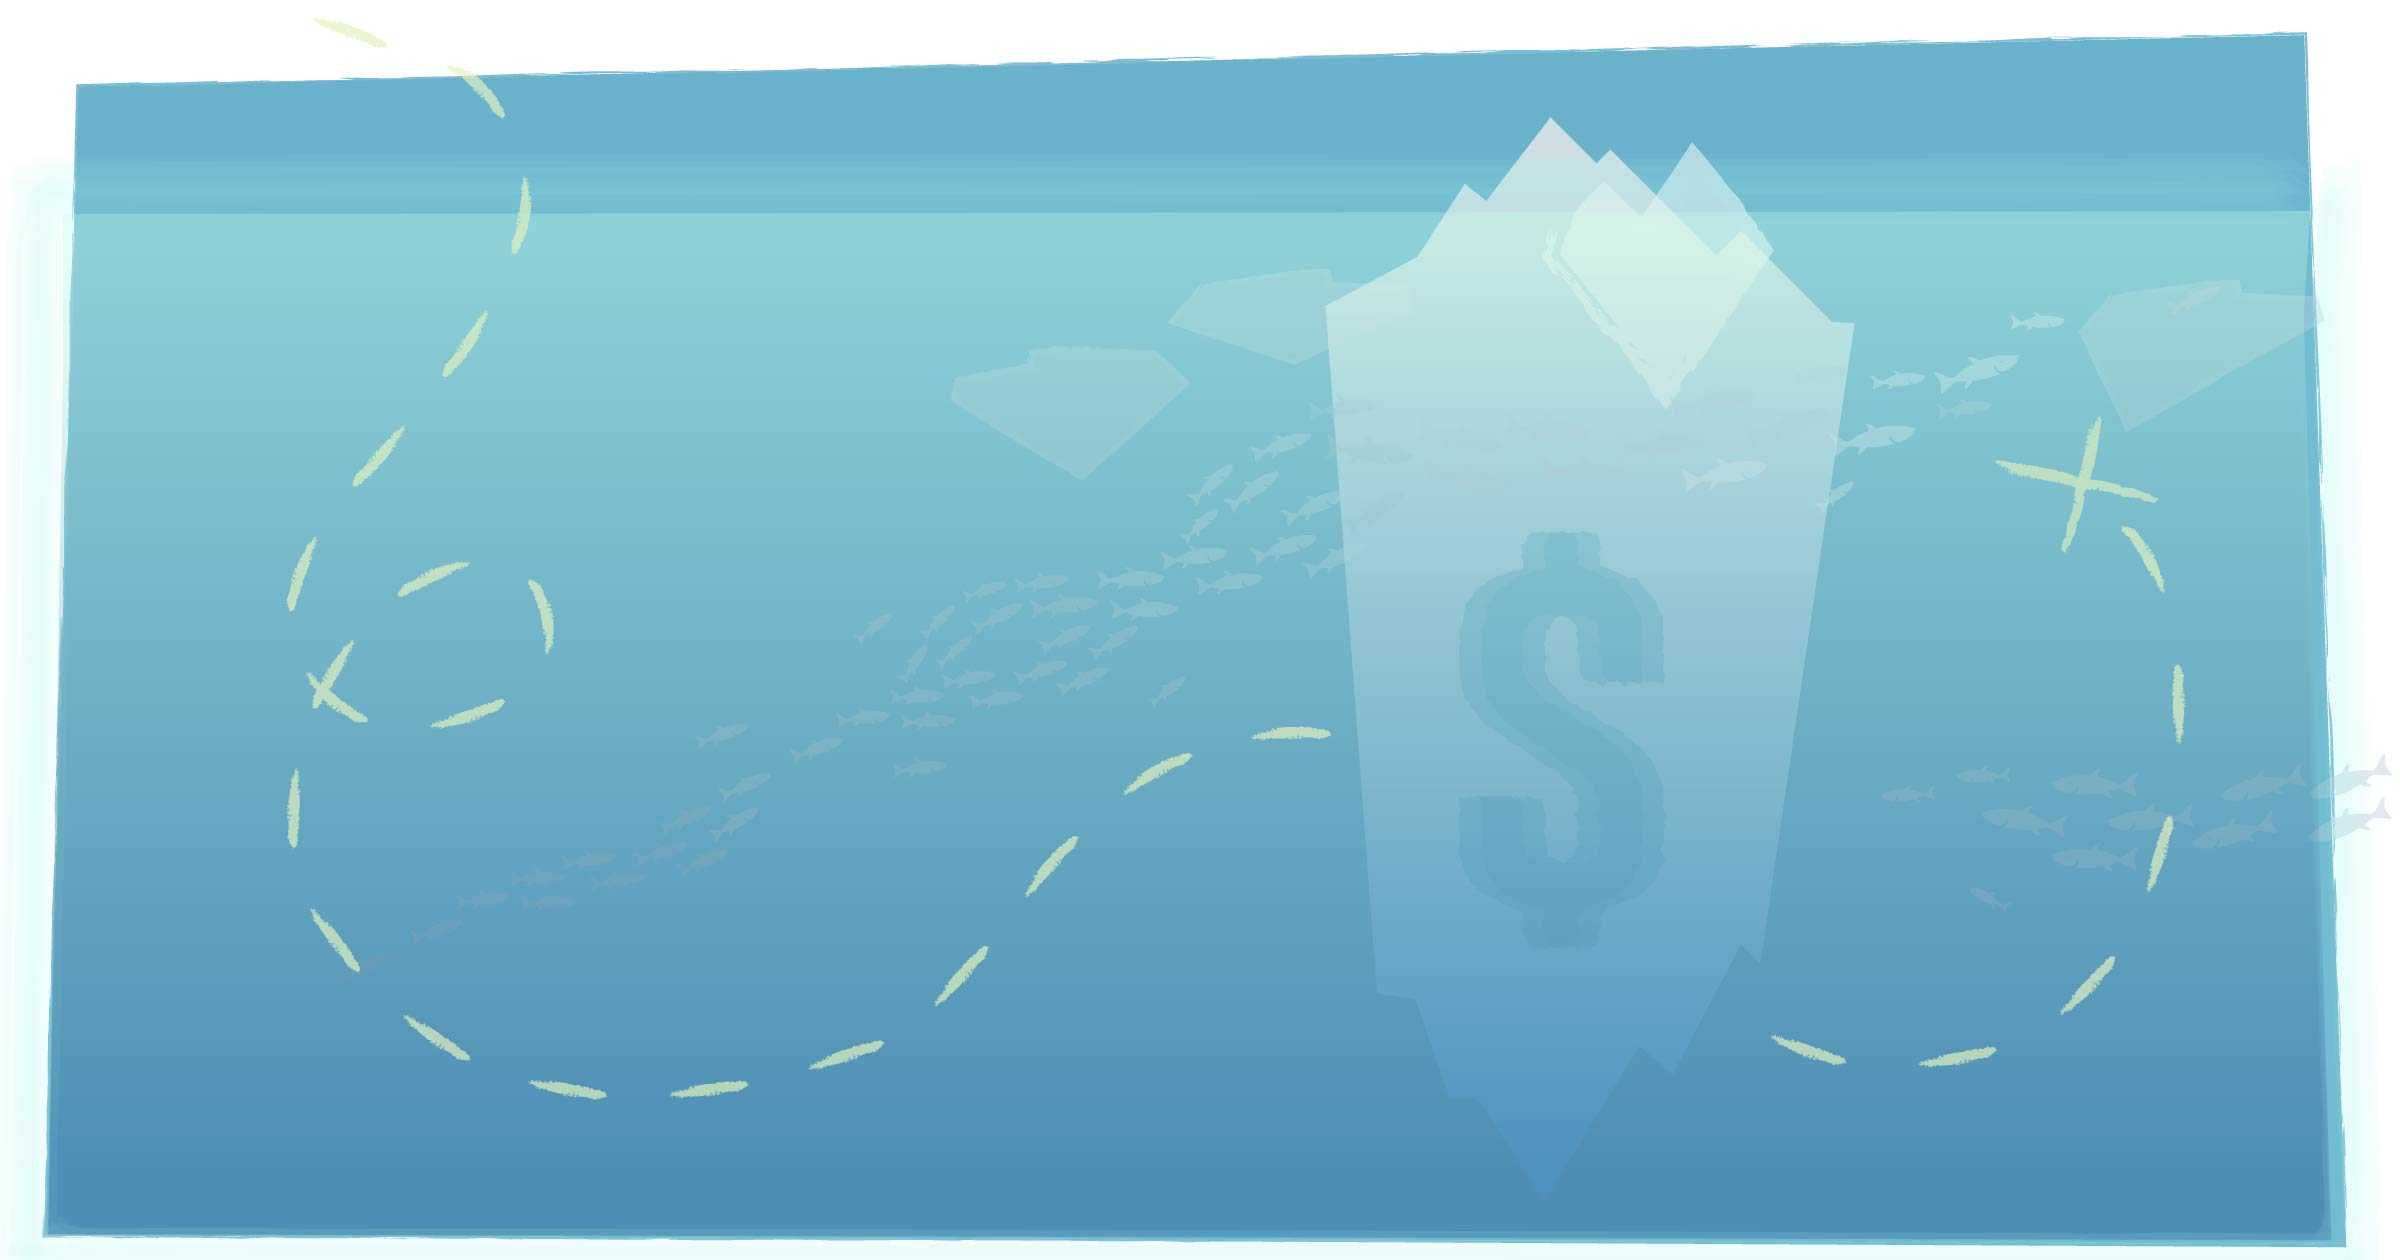 an iceberg with a dollar sign on it as seen underwater